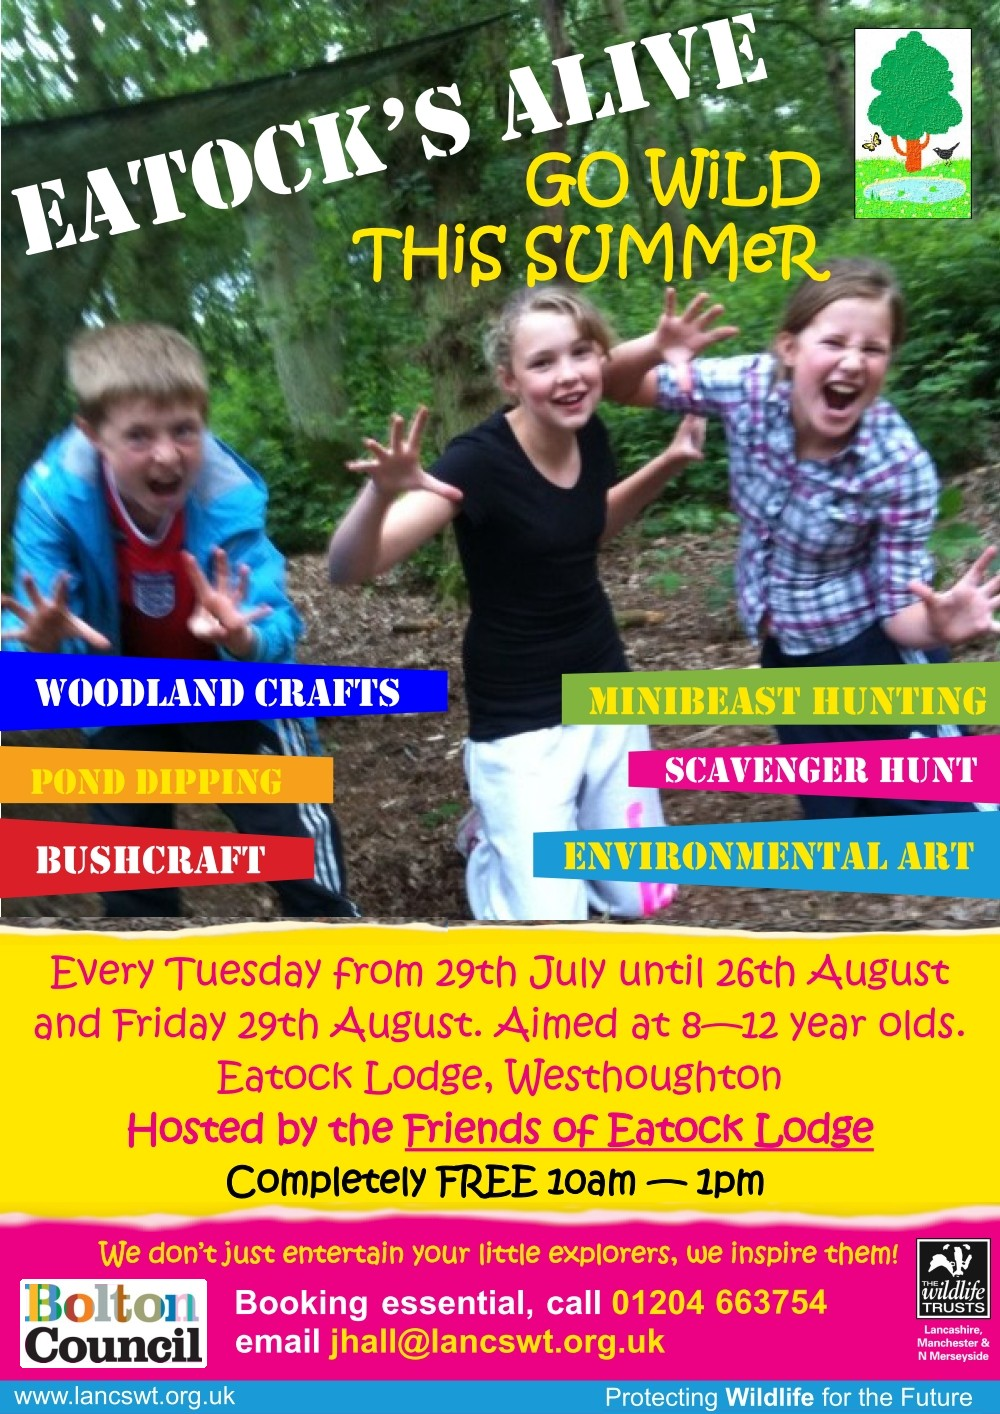 Eatock's Alive 2014 - Friends of Eatock Lodge join forces with Lancashire Wildlife Trust.